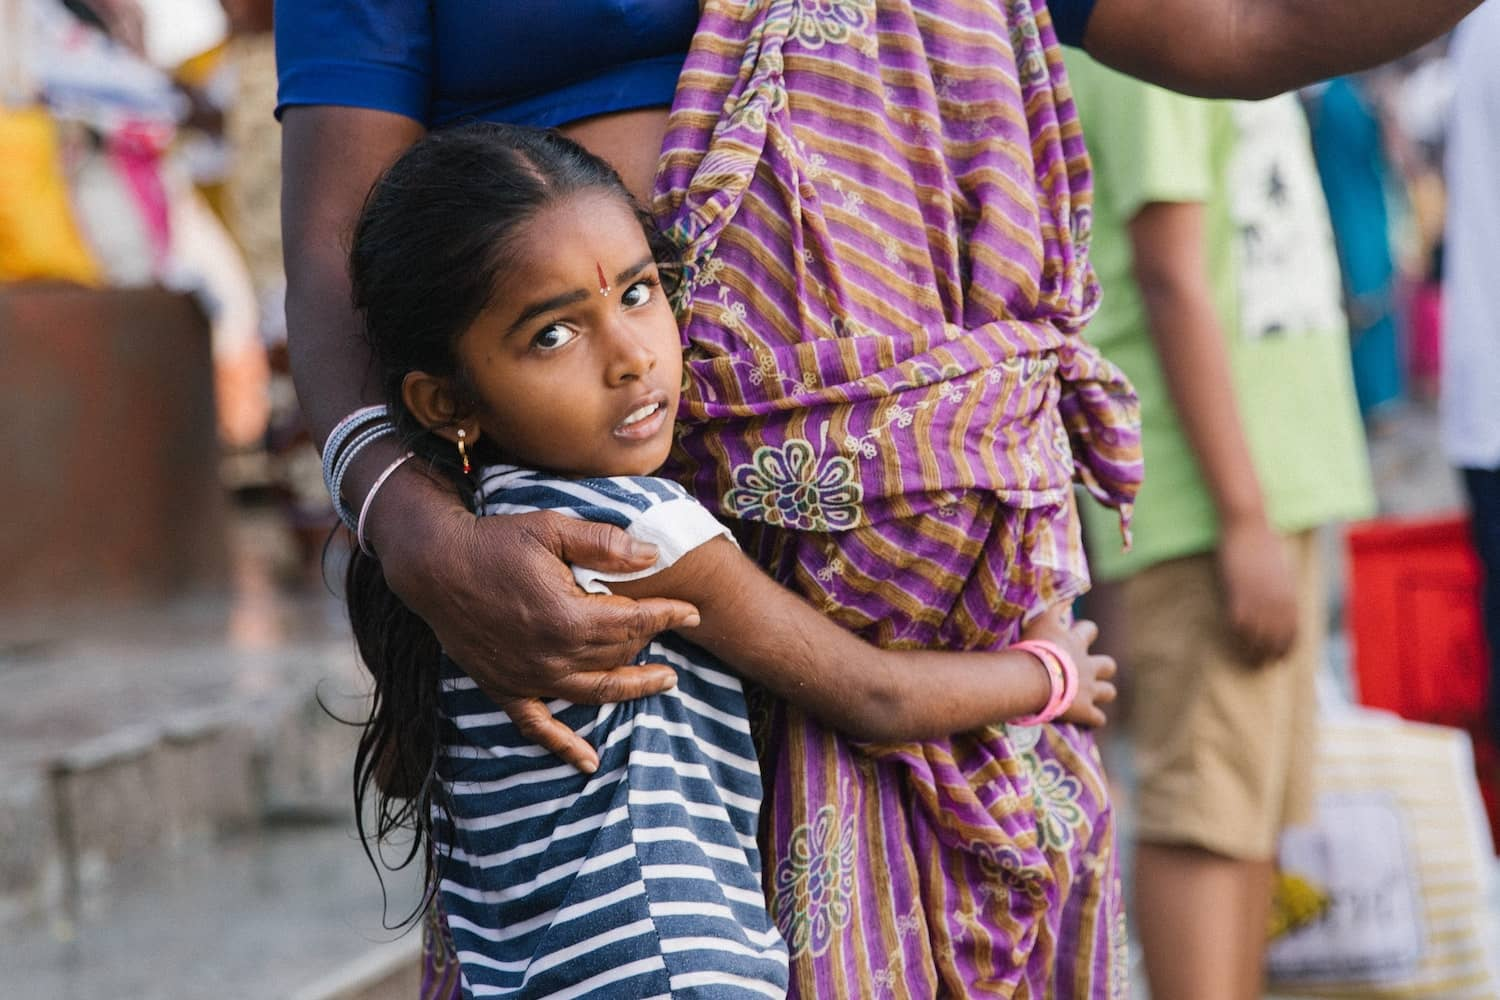 COVID in India: Anjali's perspective